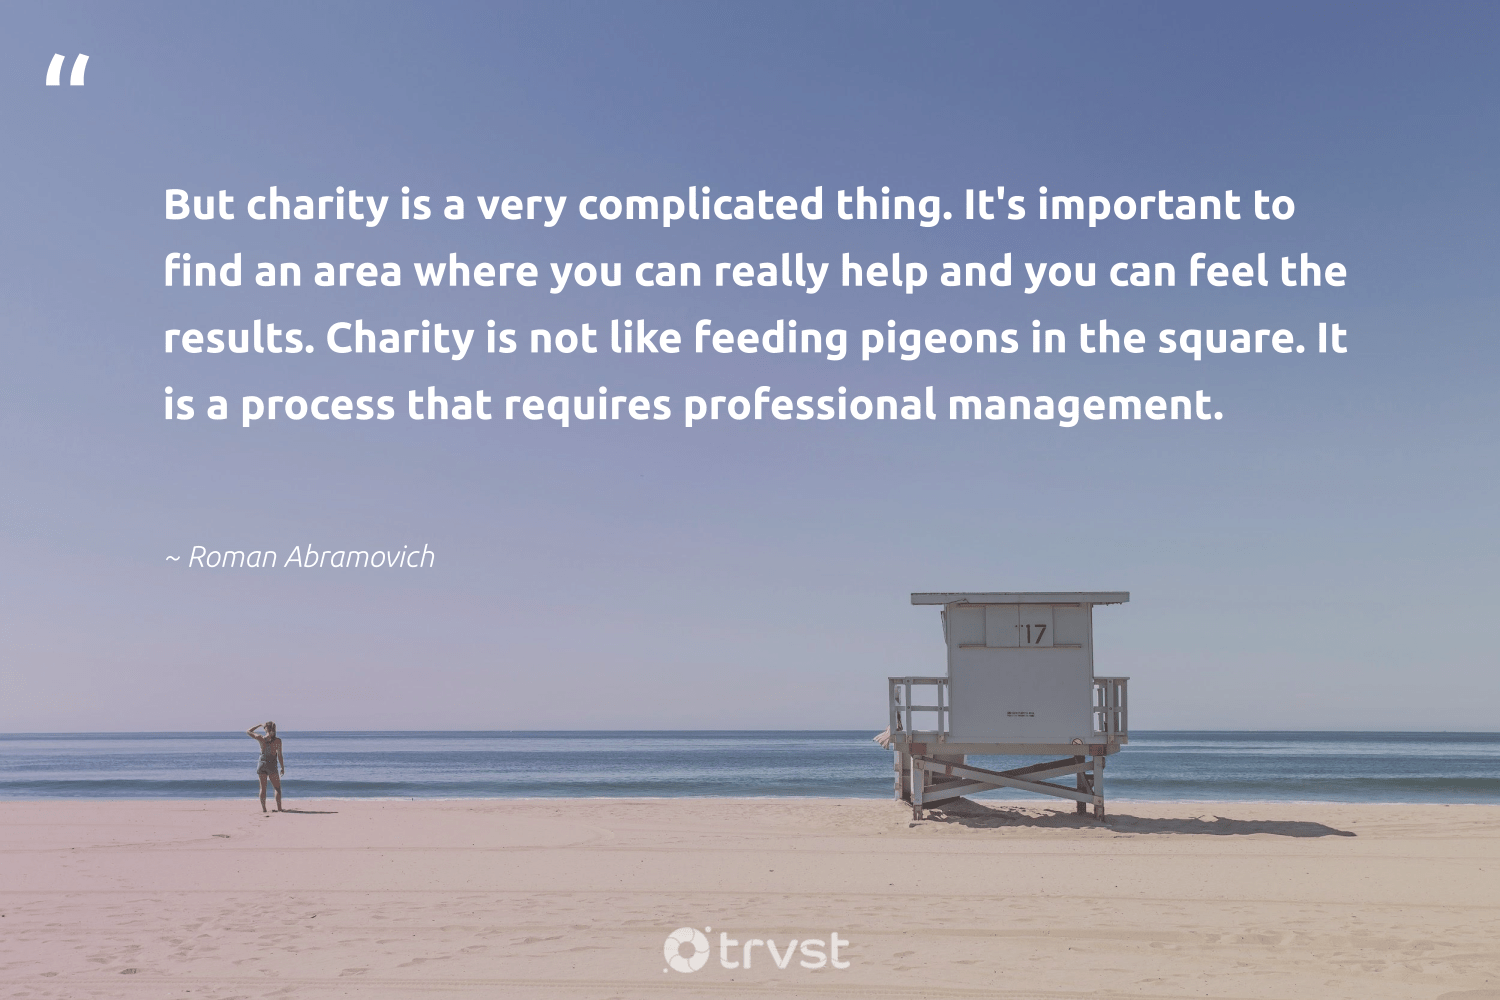 """""""But charity is a very complicated thing. It's important to find an area where you can really help and you can feel the results. Charity is not like feeding pigeons in the square. It is a process that requires professional management.""""  - Roman Abramovich #trvst #quotes #results #makeadifference #thinkgreen #equalopportunity #takeaction #weareallone #planetearthfirst #society #socialchange #strongercommunities"""